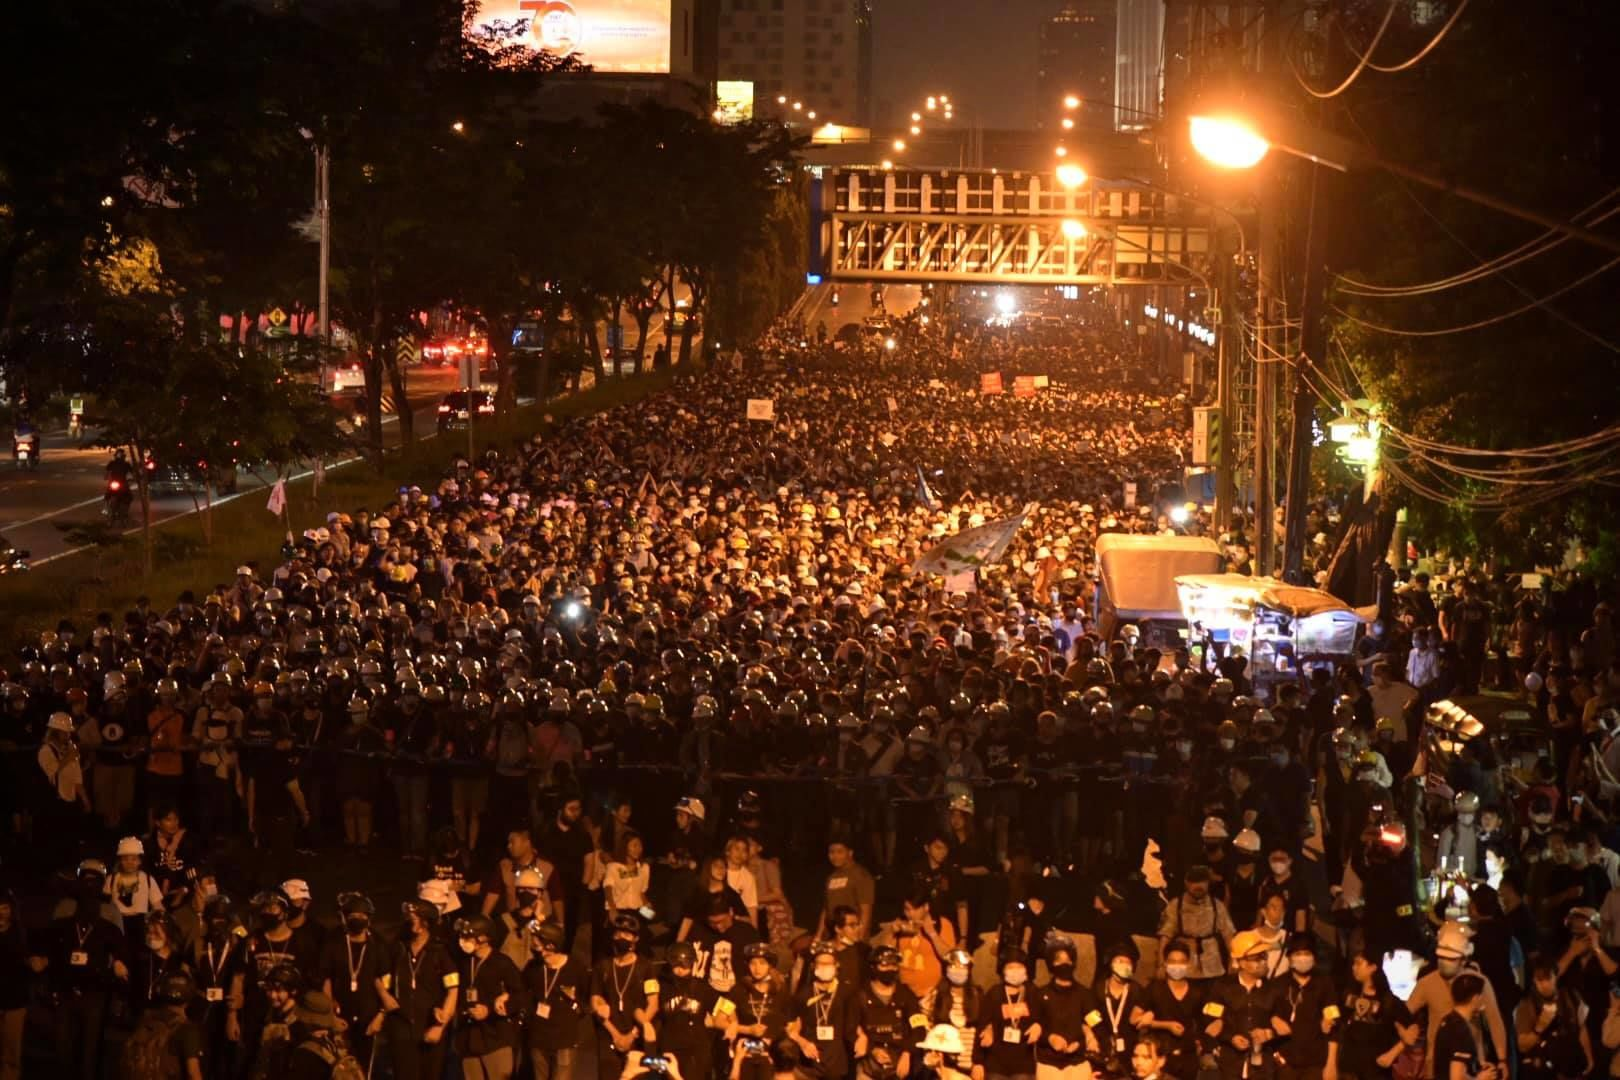 Who are these Thai student protesters, and what are they protesting about? | News by Thaiger